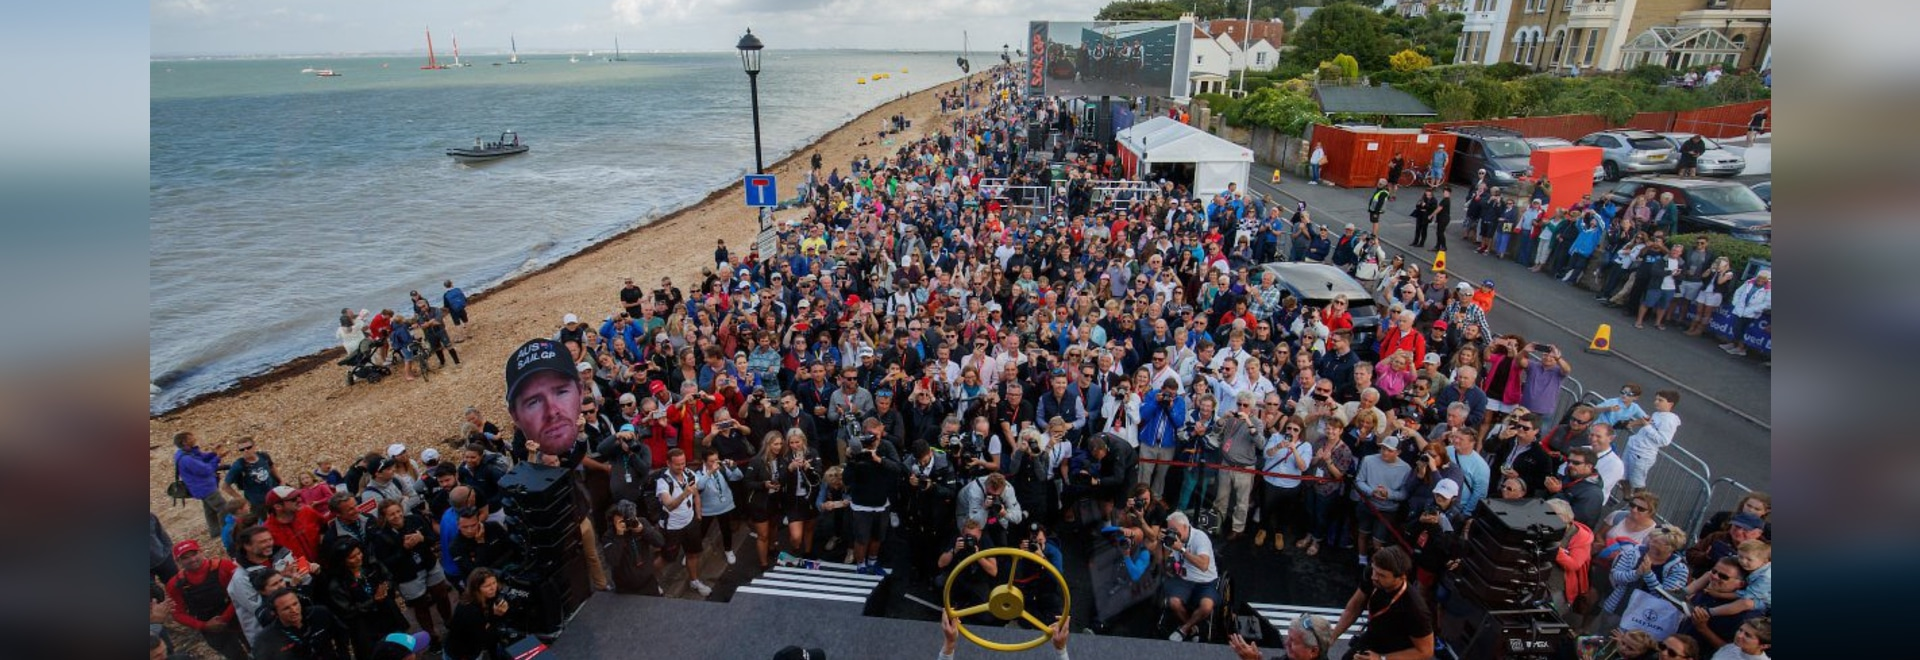 SailGP to head back to the UK for first European event in Season 2